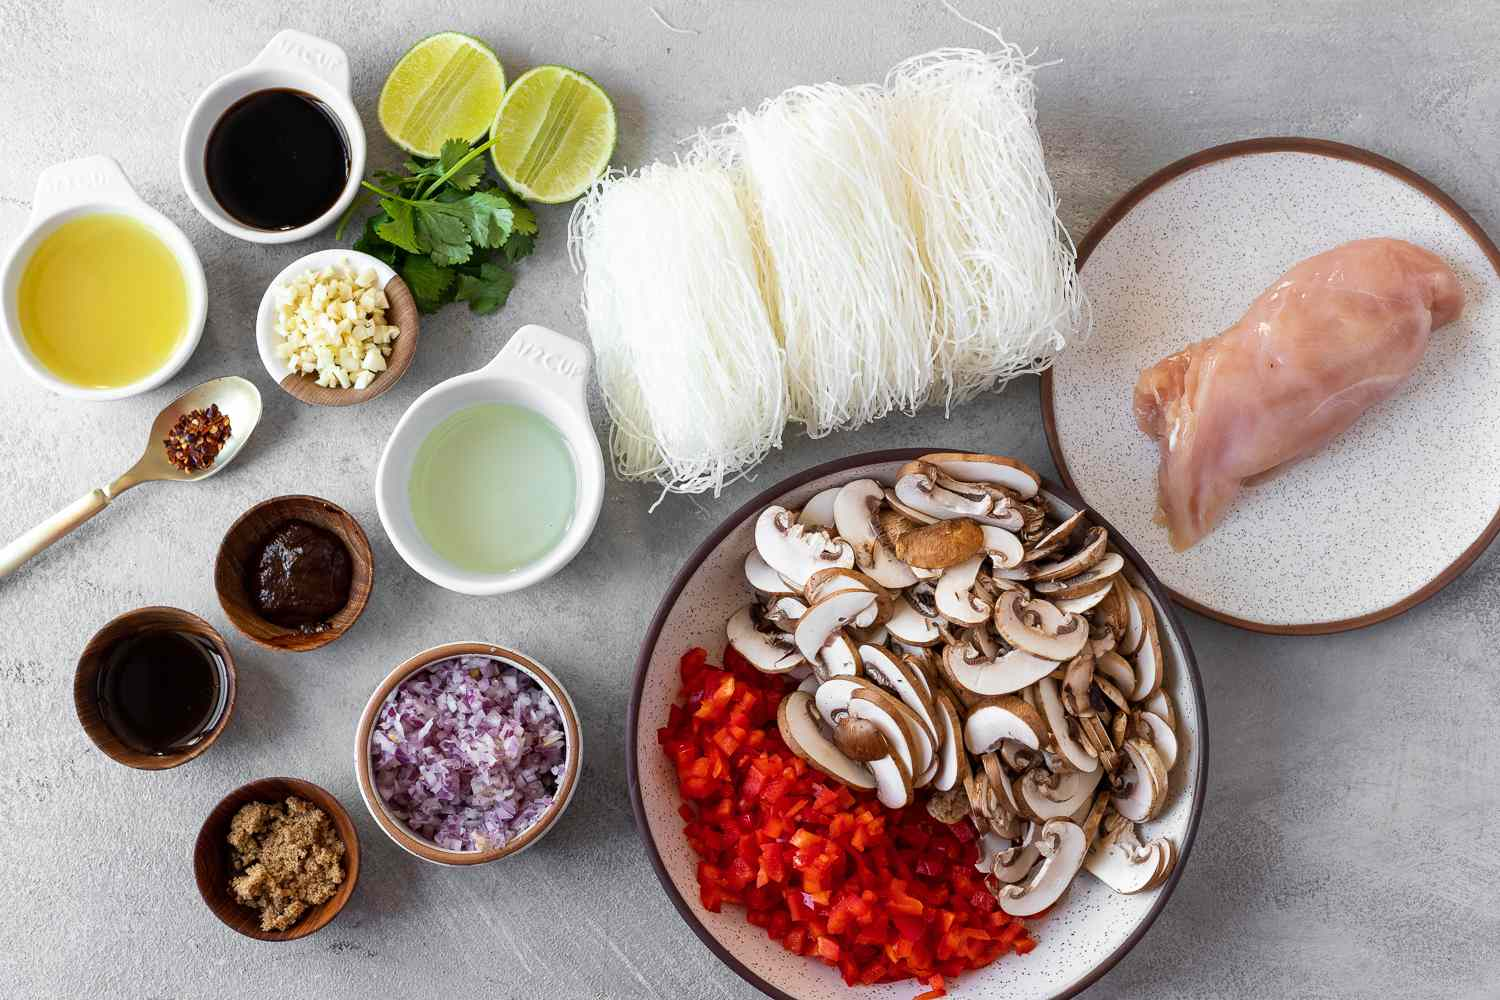 Thai Glass Noodle Stir-Fry With Chicken and Vegetables ingredients